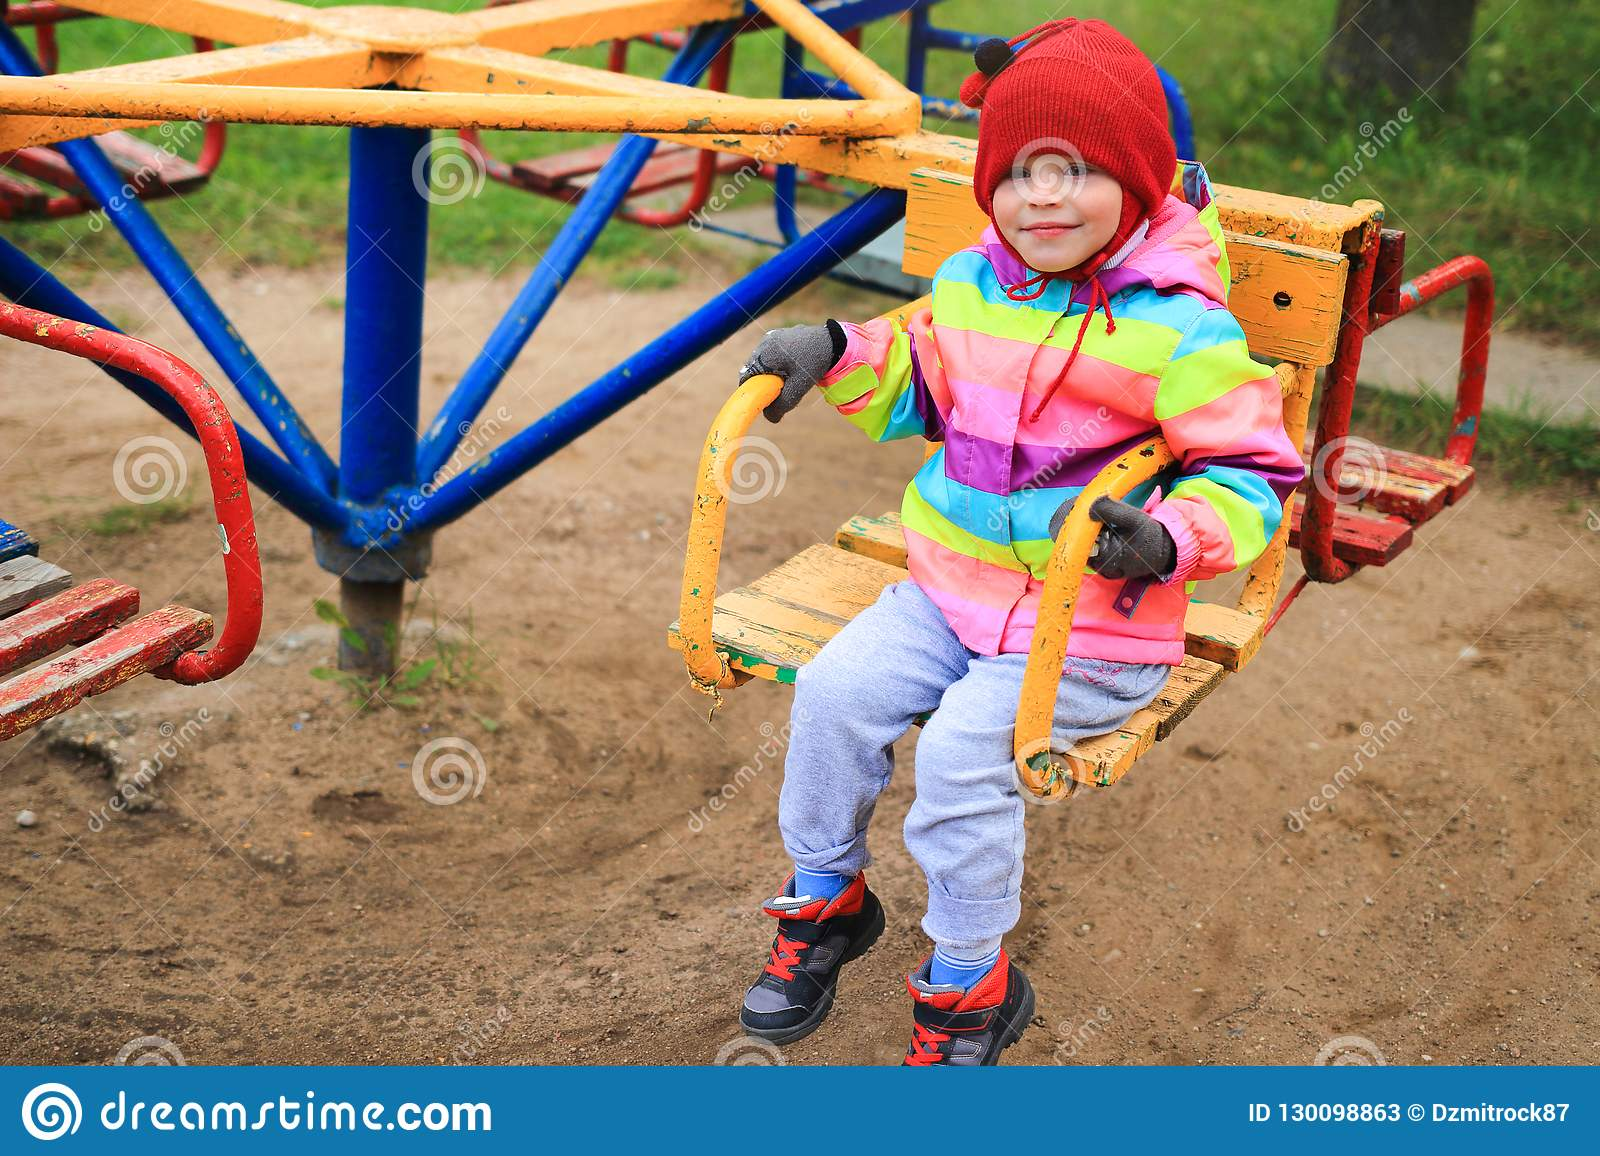 5c178c7f8 Little girl child on the carousel in the playground. The child is riding on  a